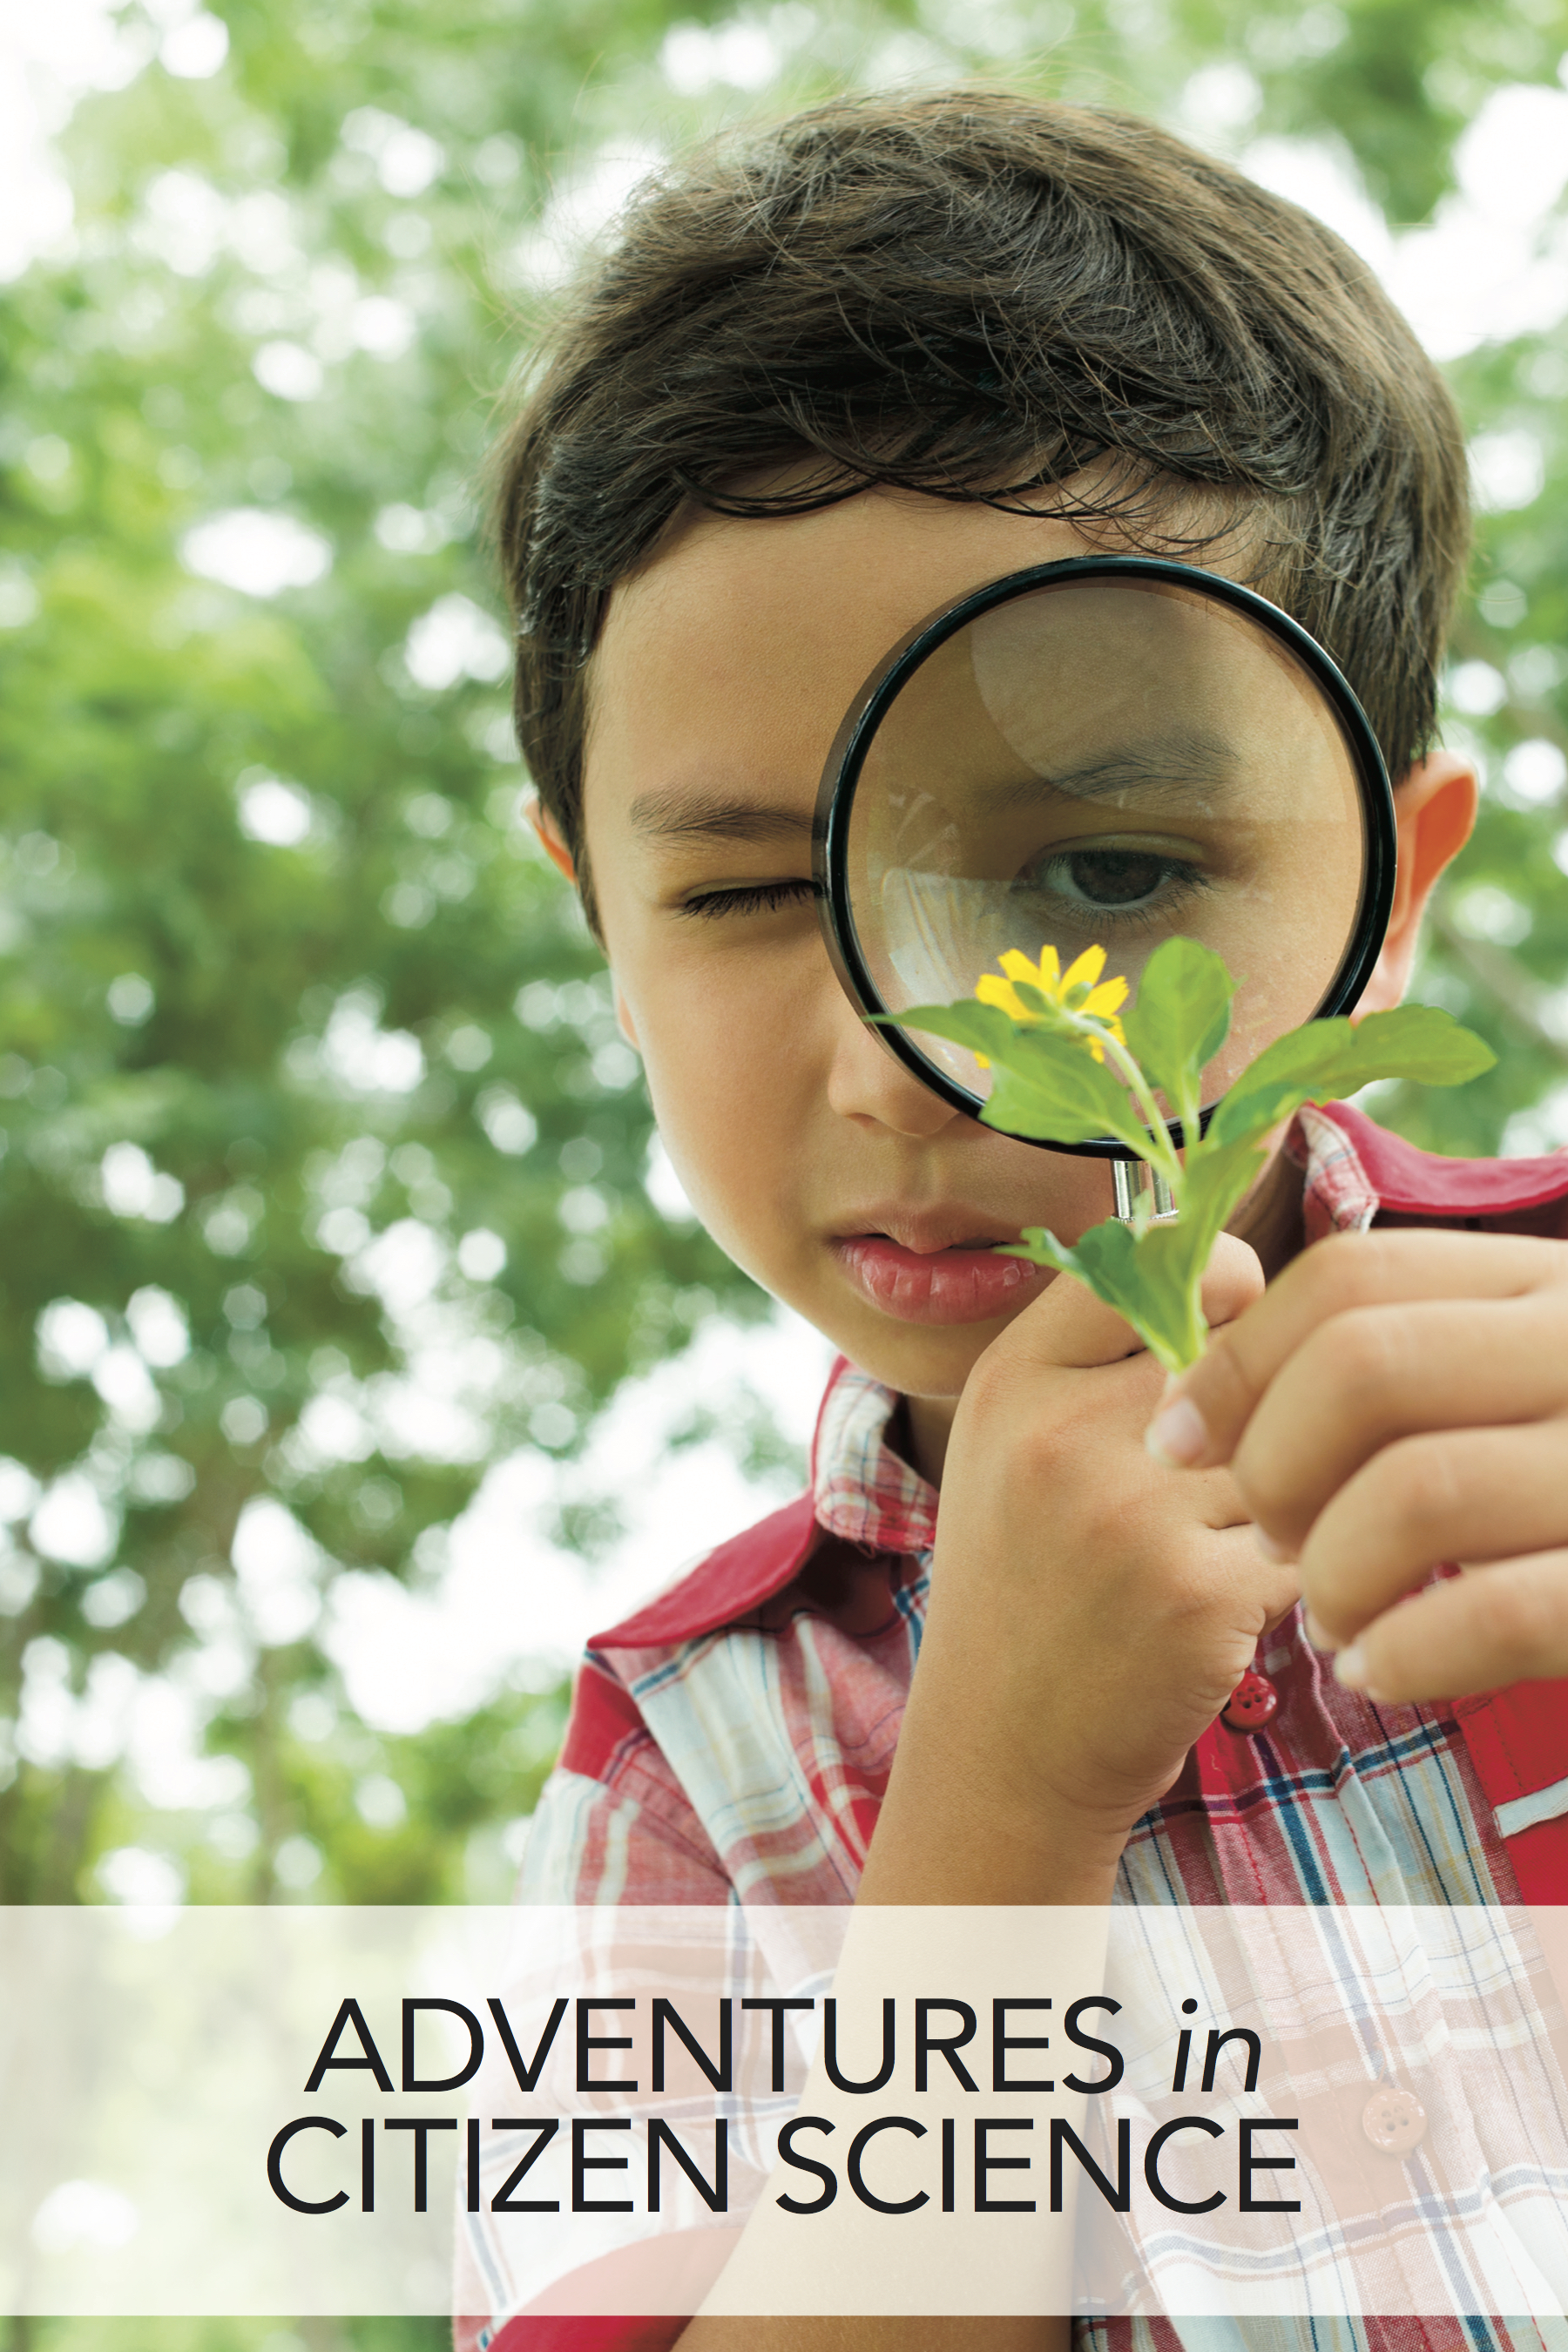 Homeschool citizen science project series: Budwatch is an easy addition to your spring science curriculum